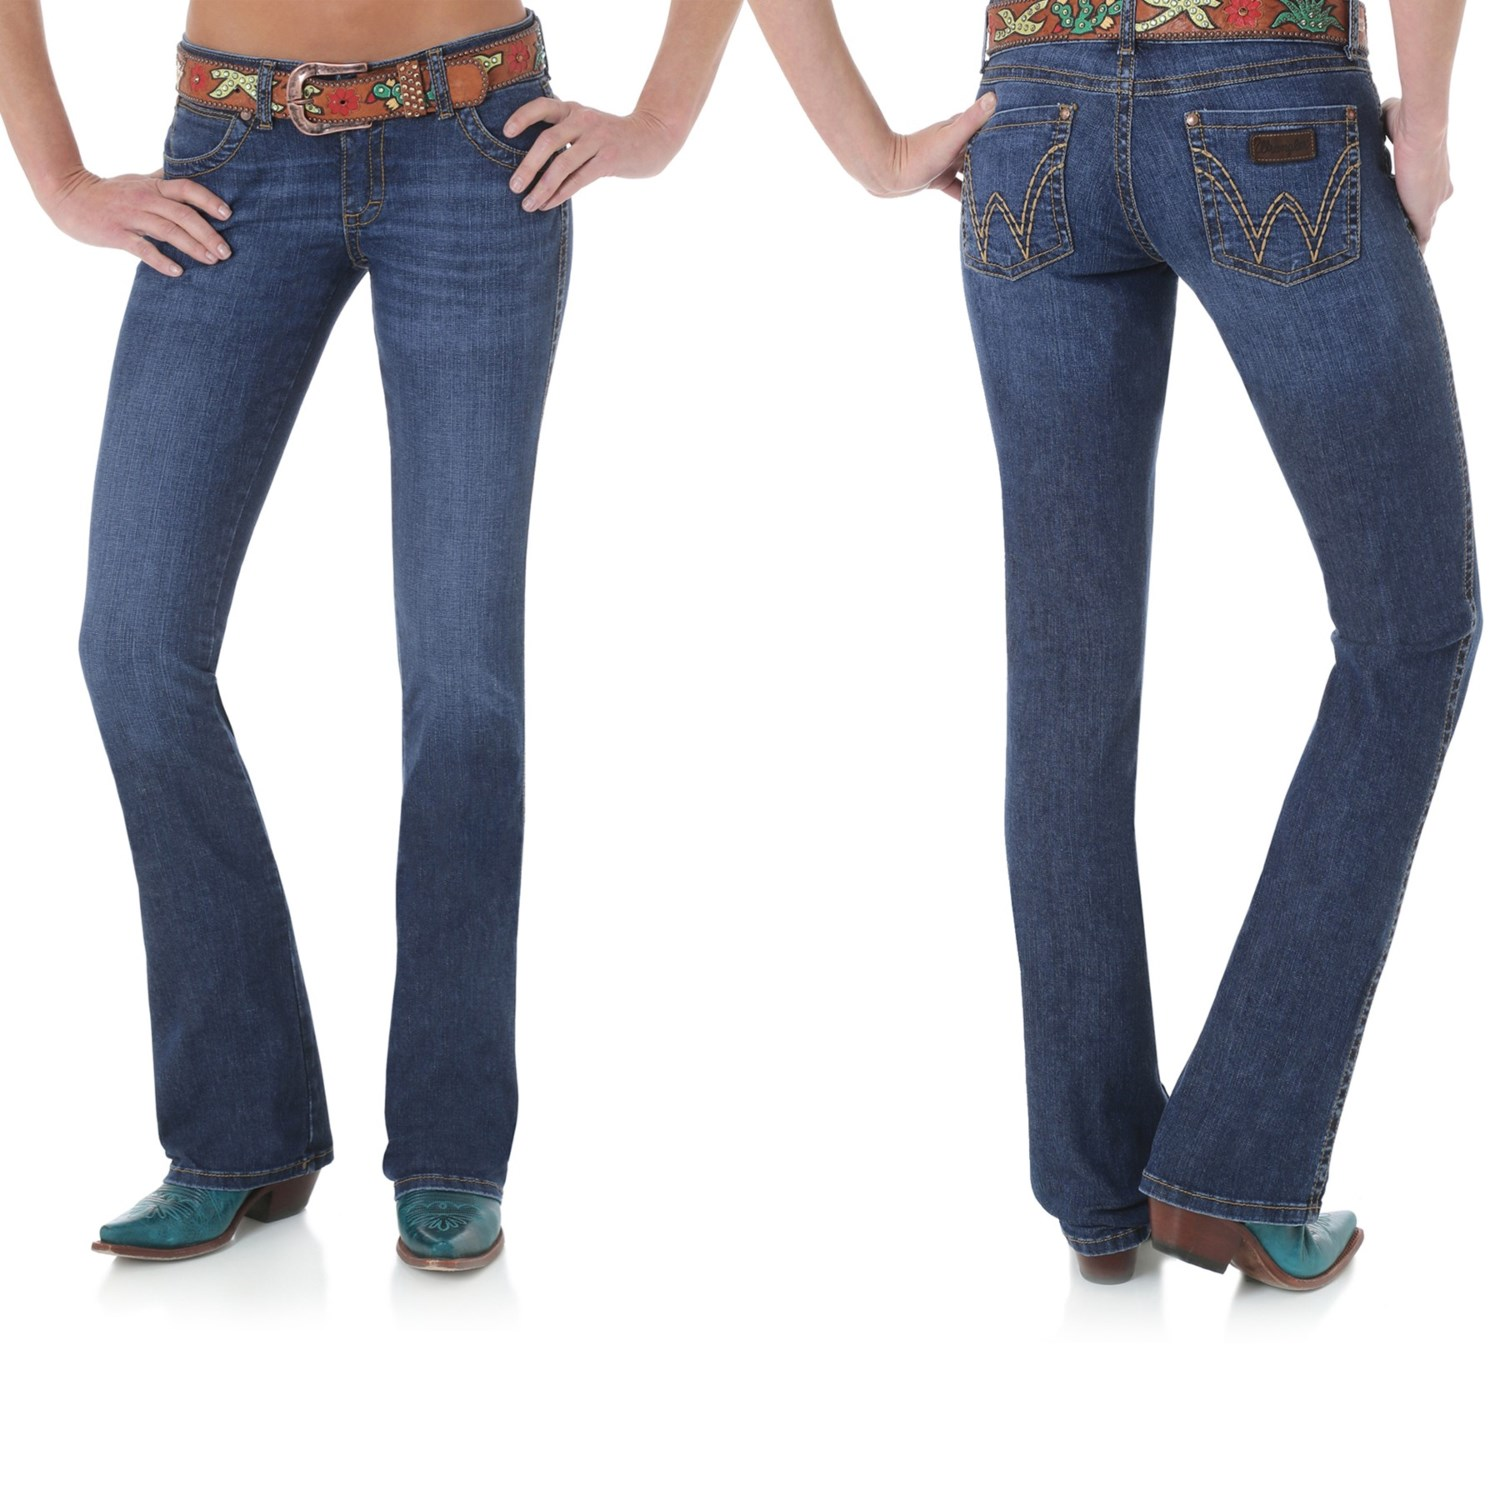 Ultra low rise jeans